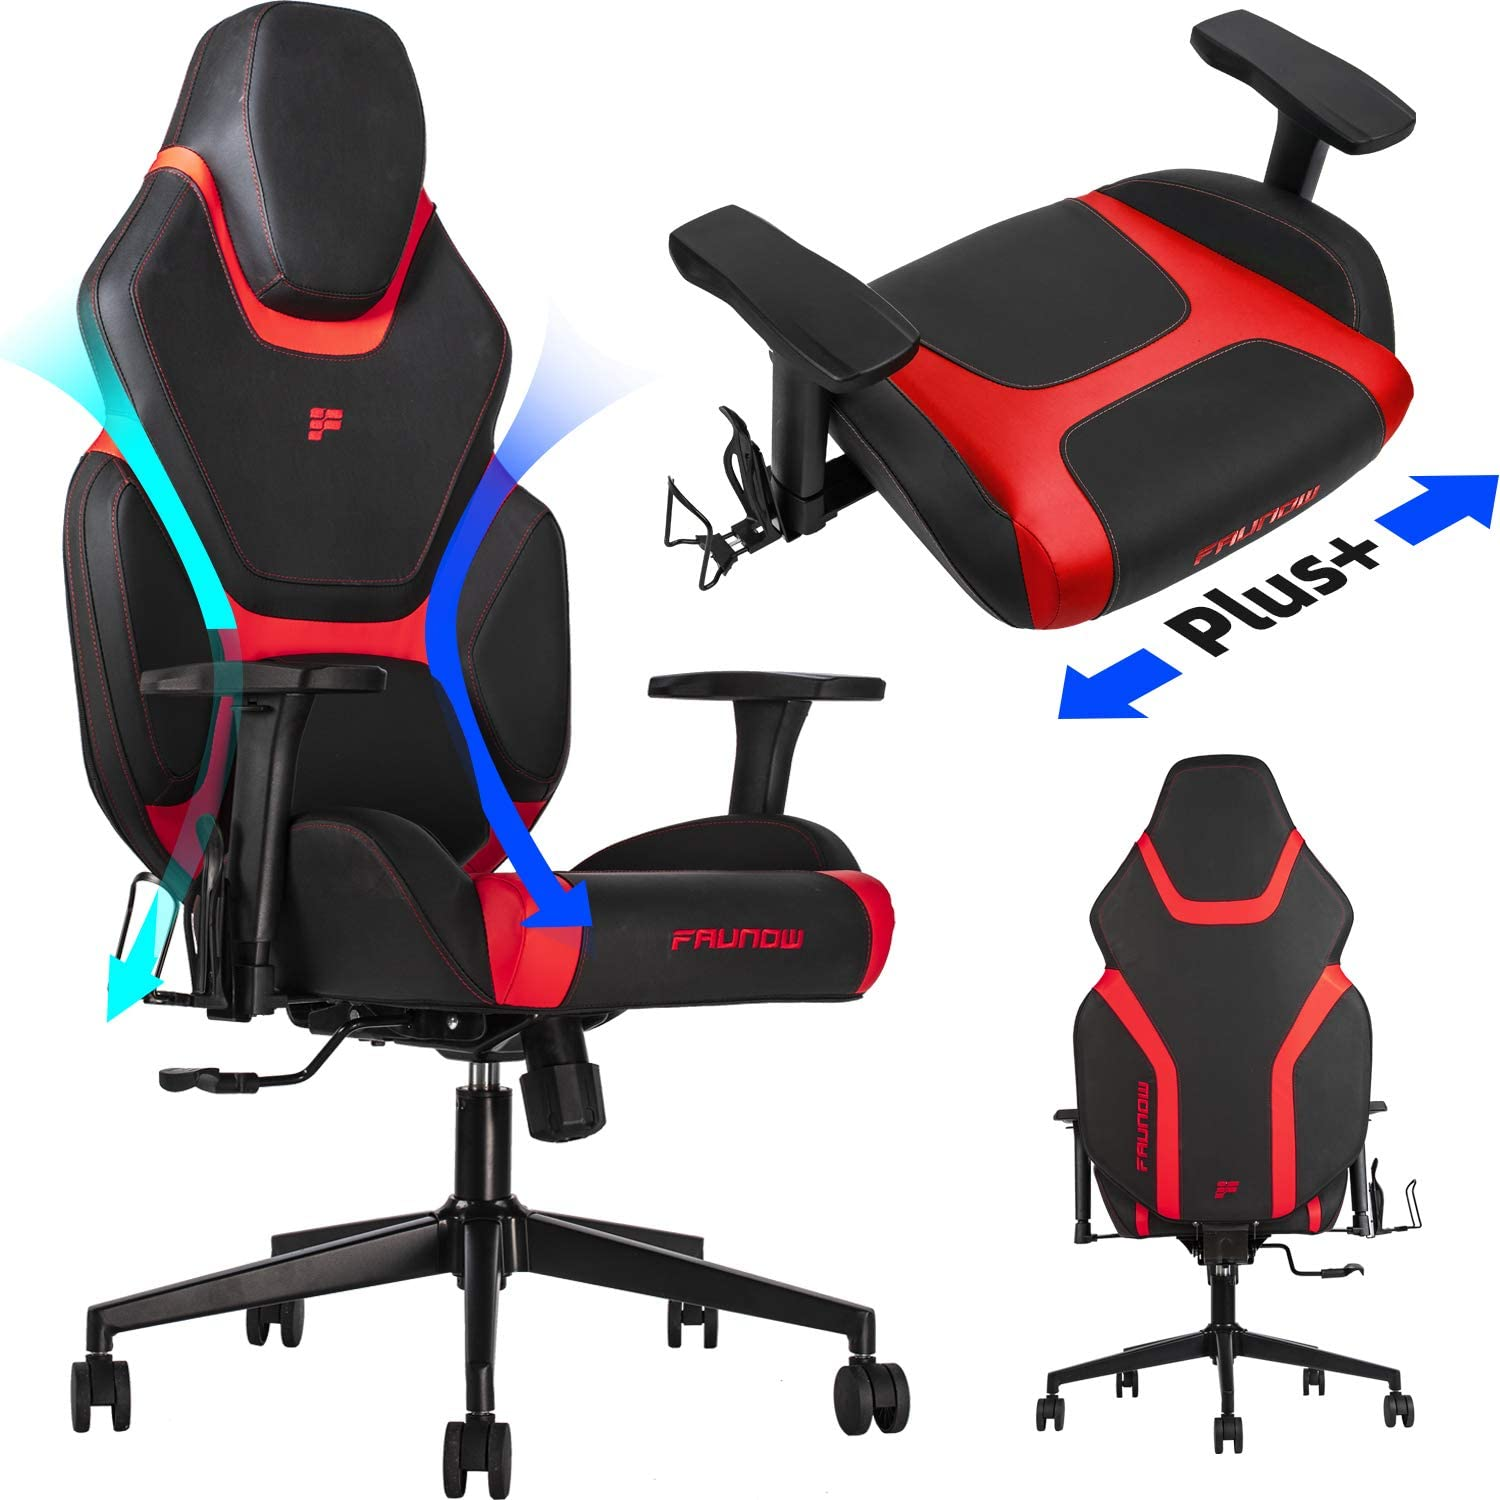 FAUNOW High Back E-Sports Gaming Chair with Headrest and Lumbar Support